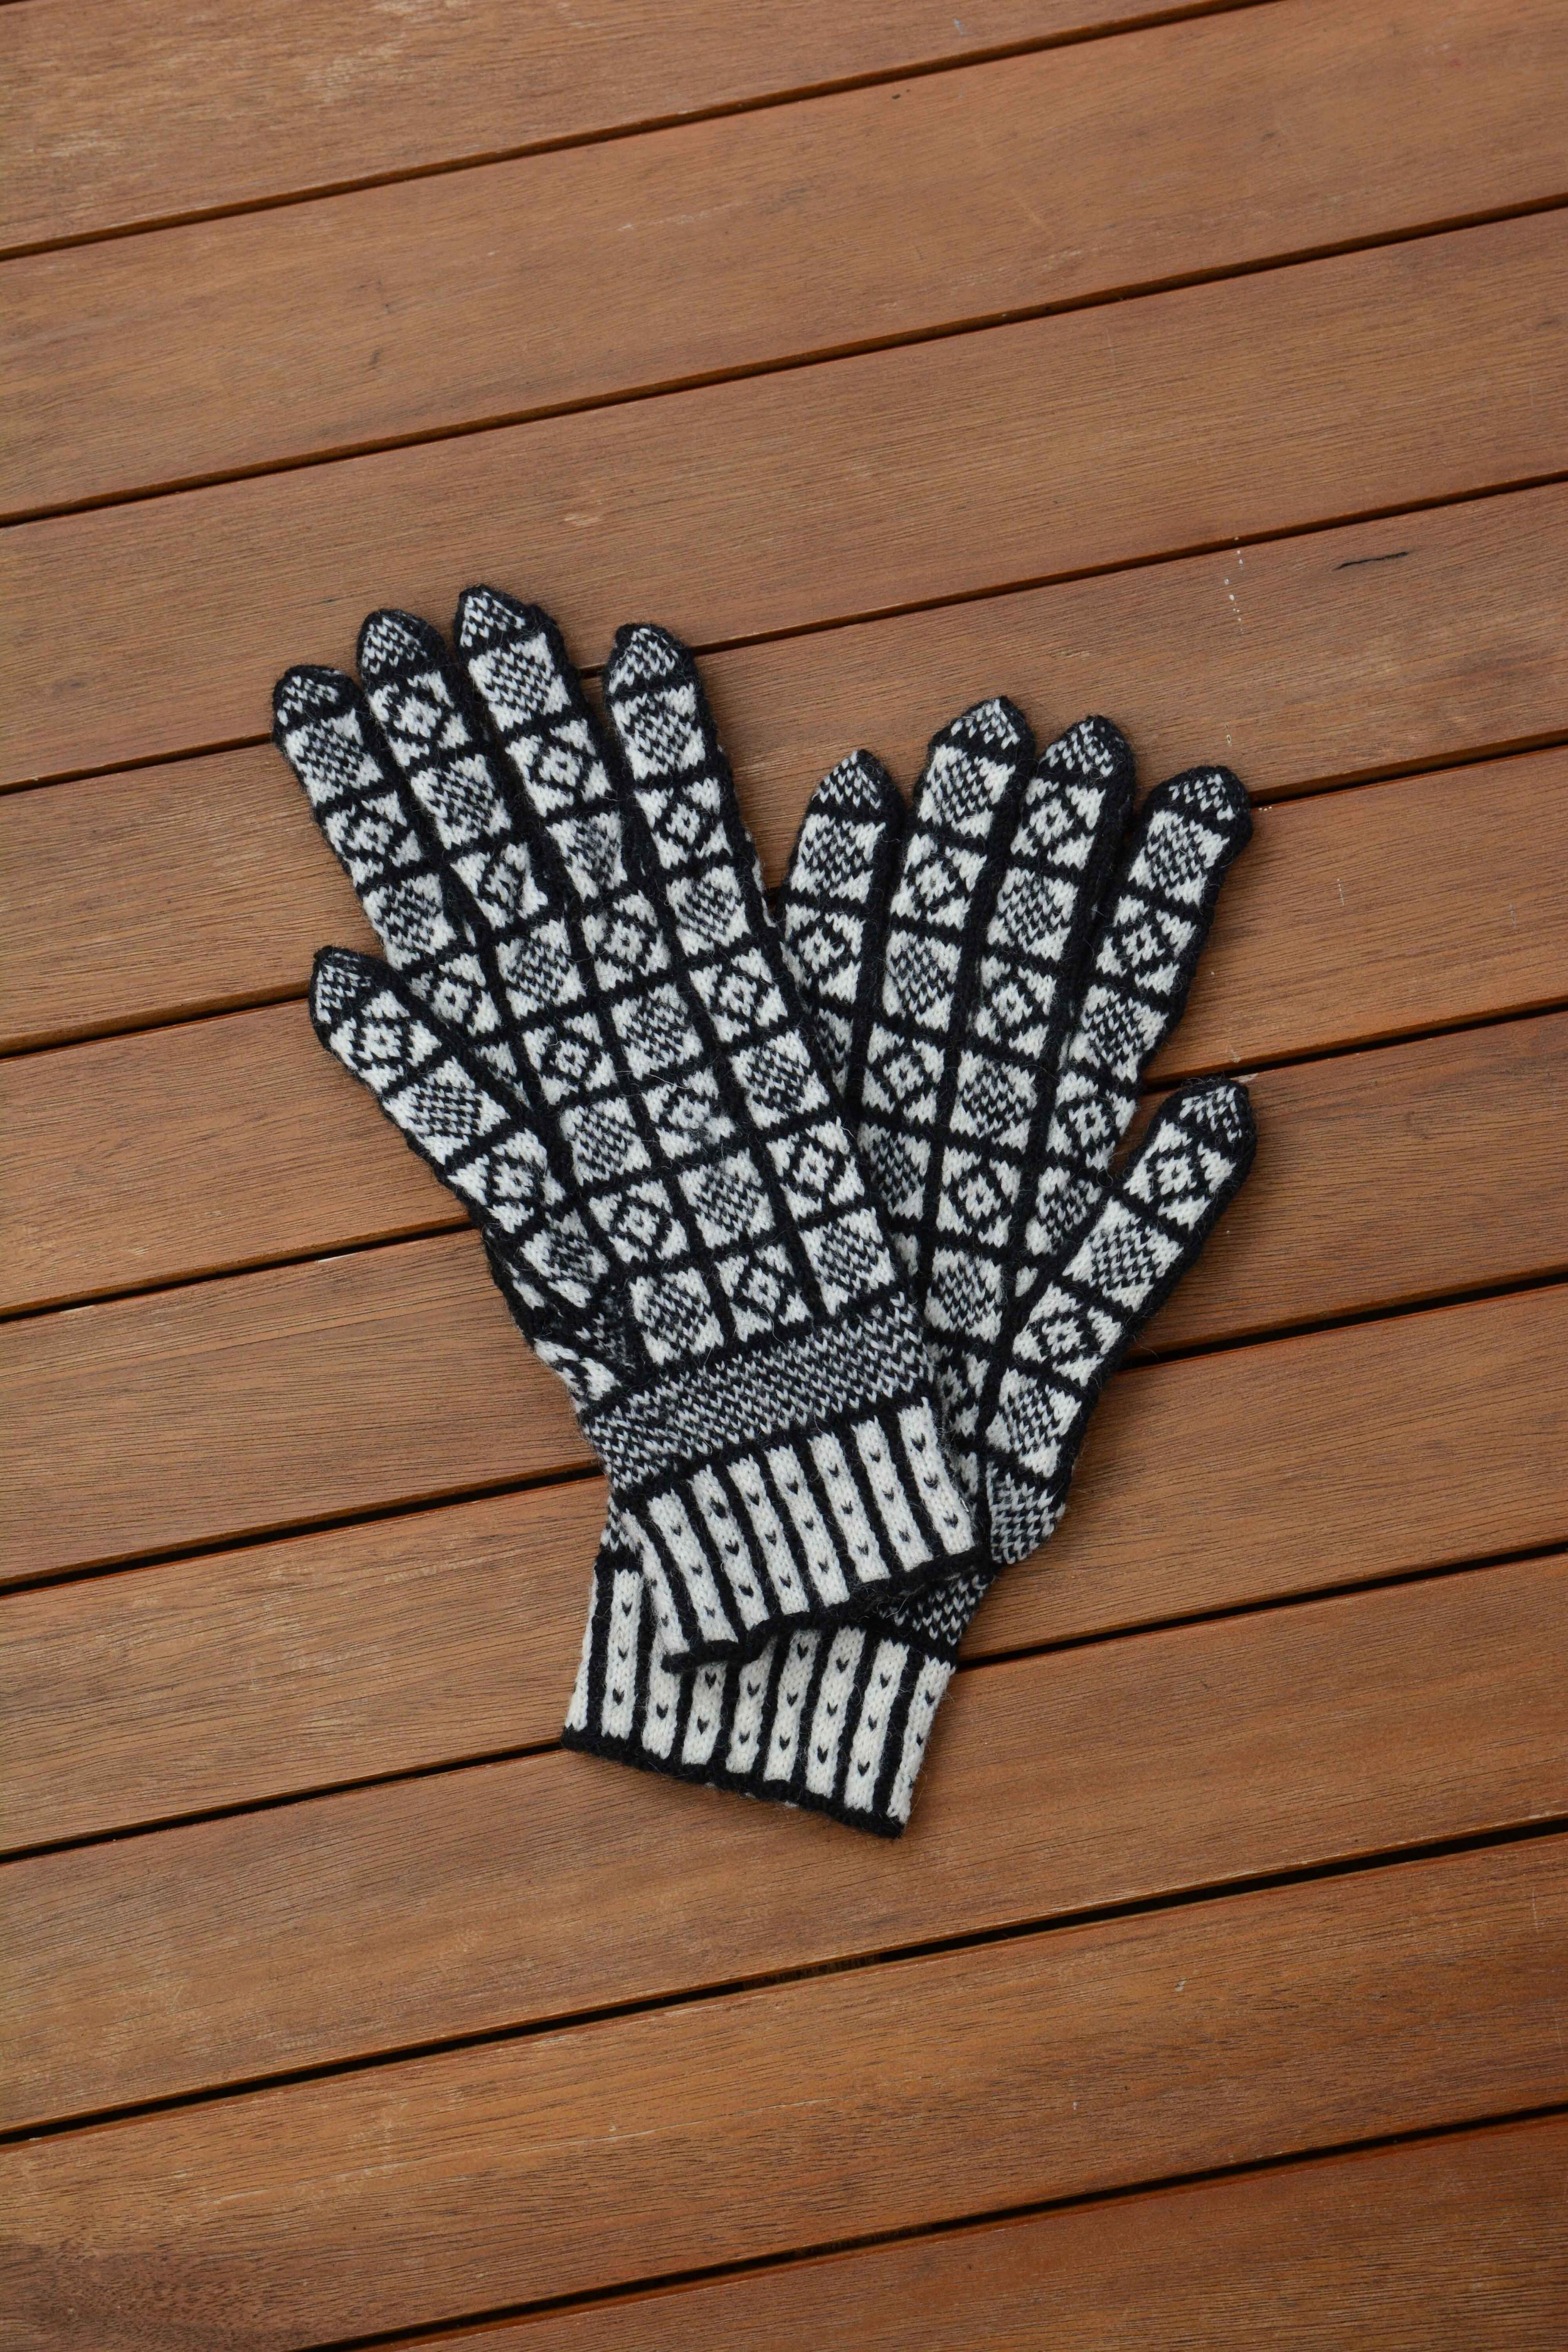 - Bespoke hand knitted Merino ladies gloves in Duke pattern, made to order for perfect fit £125.00